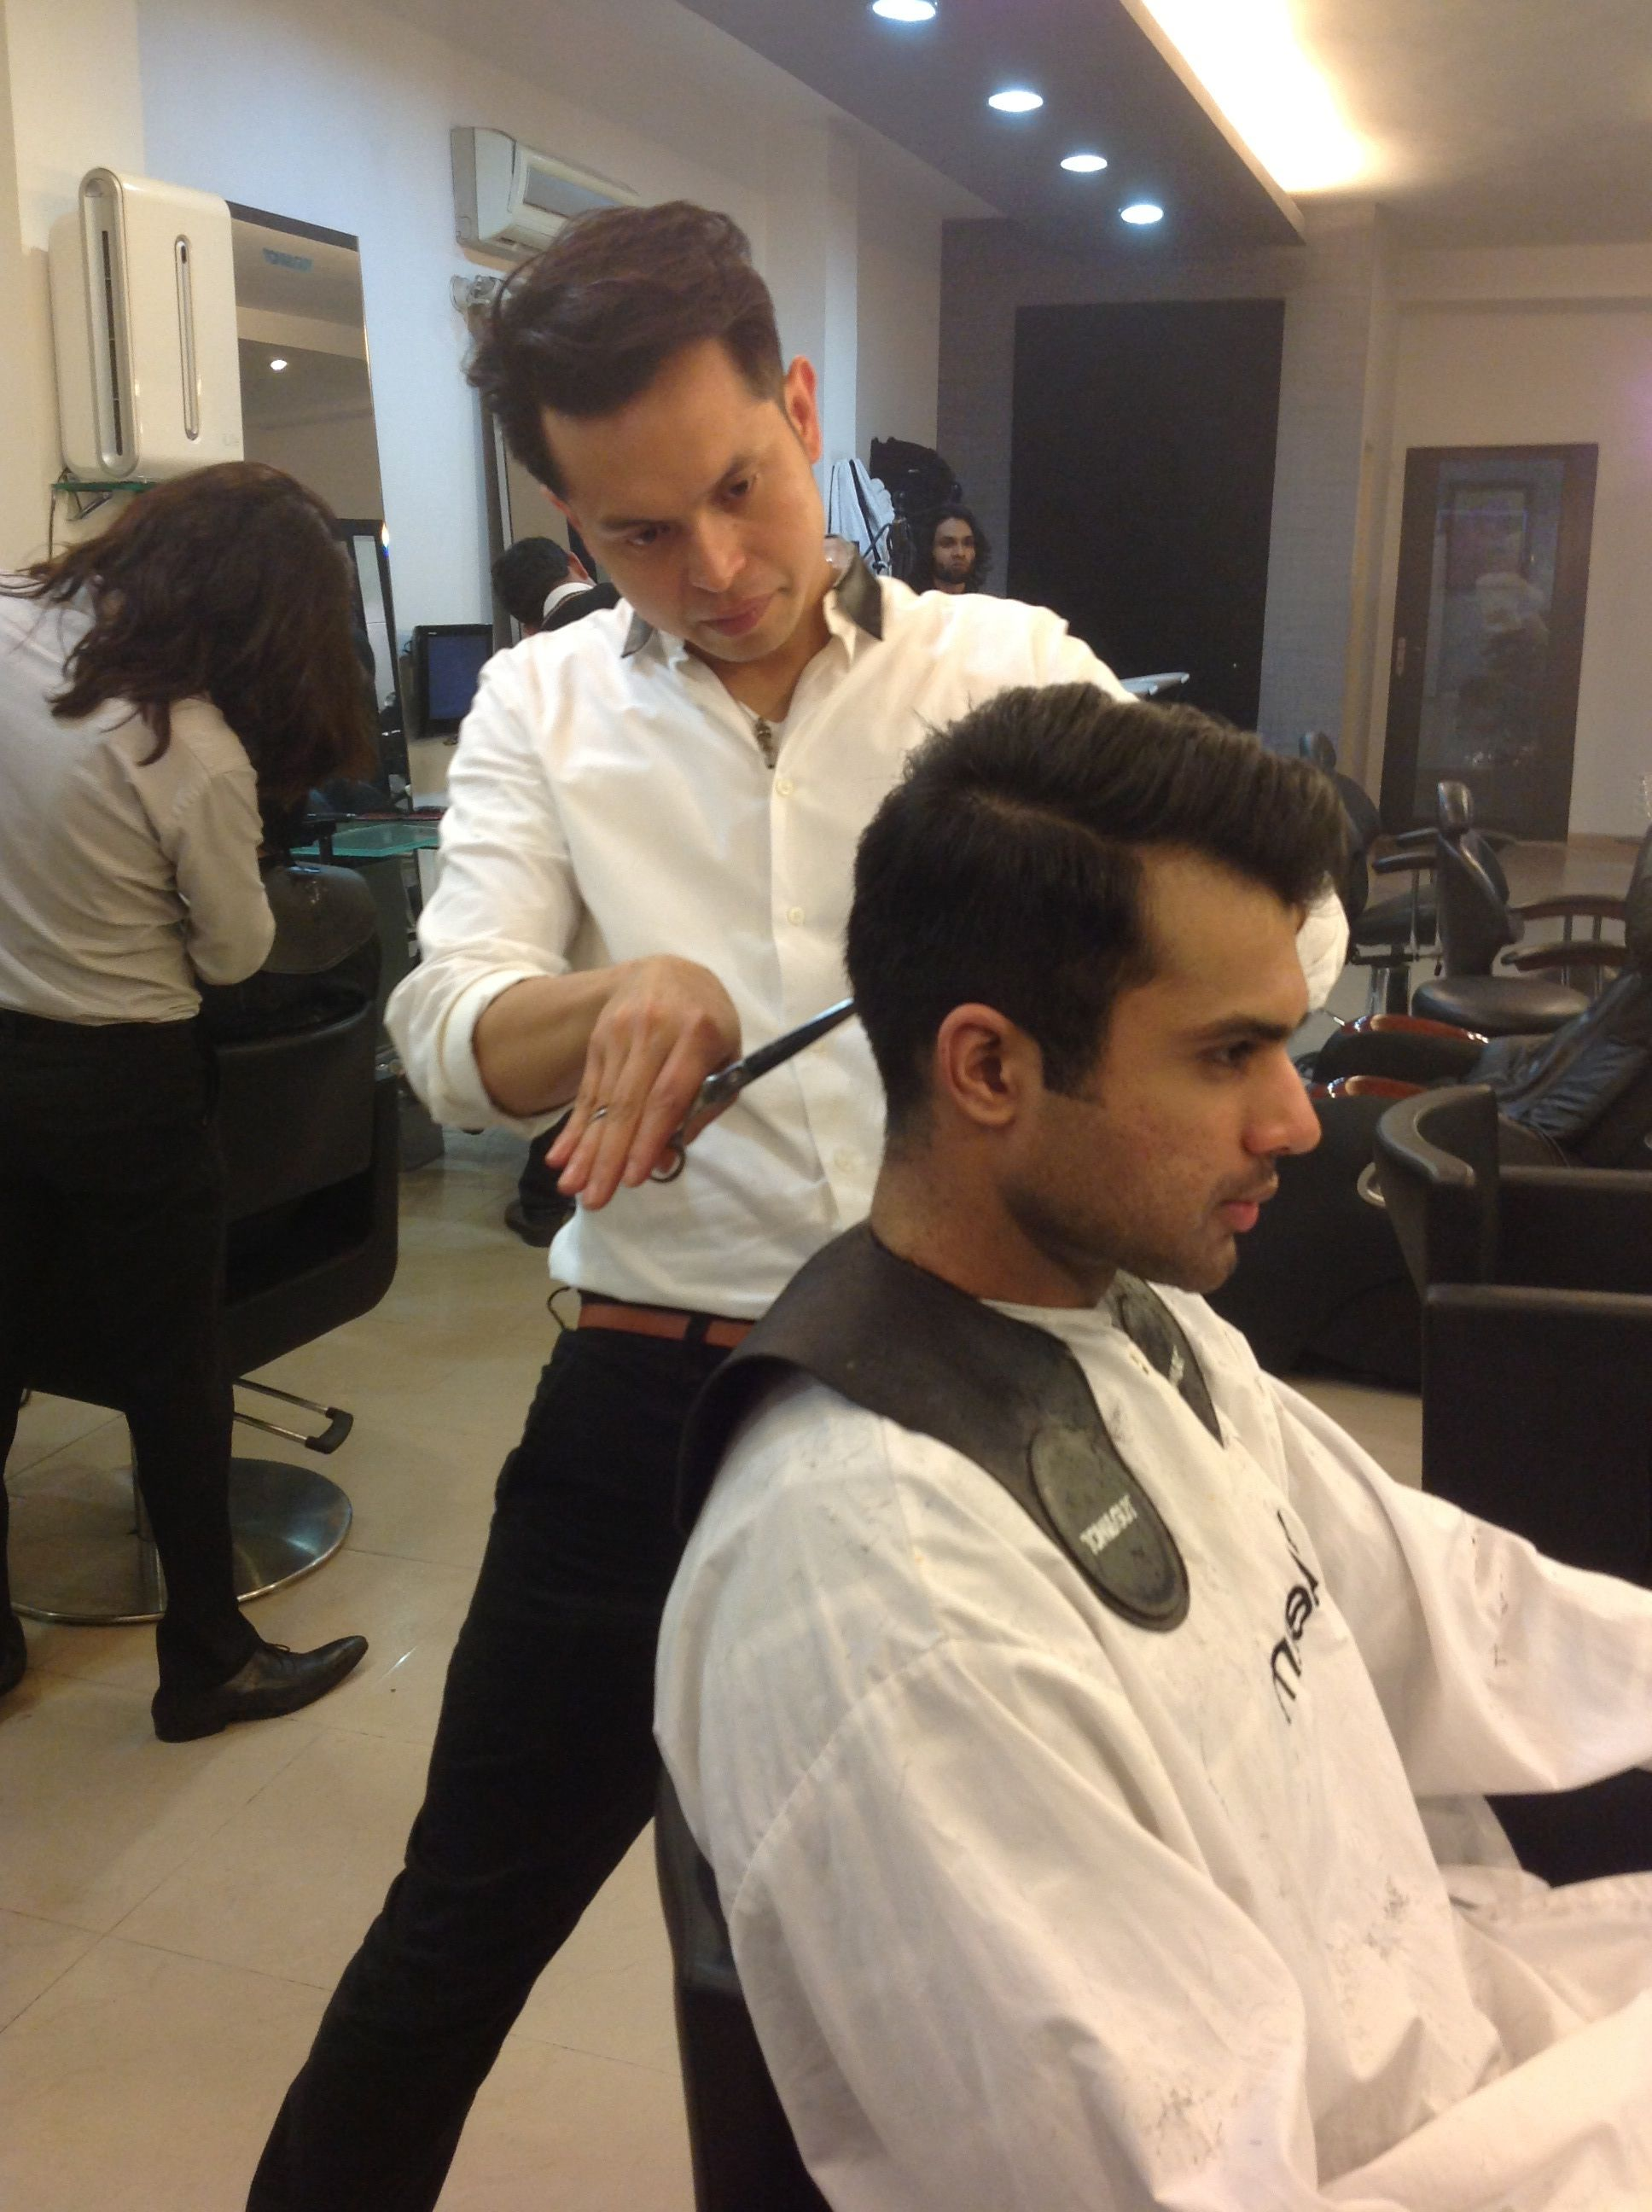 Shammal Qureshi Giving A Haircut To A Model Toniguy Lahore Mm